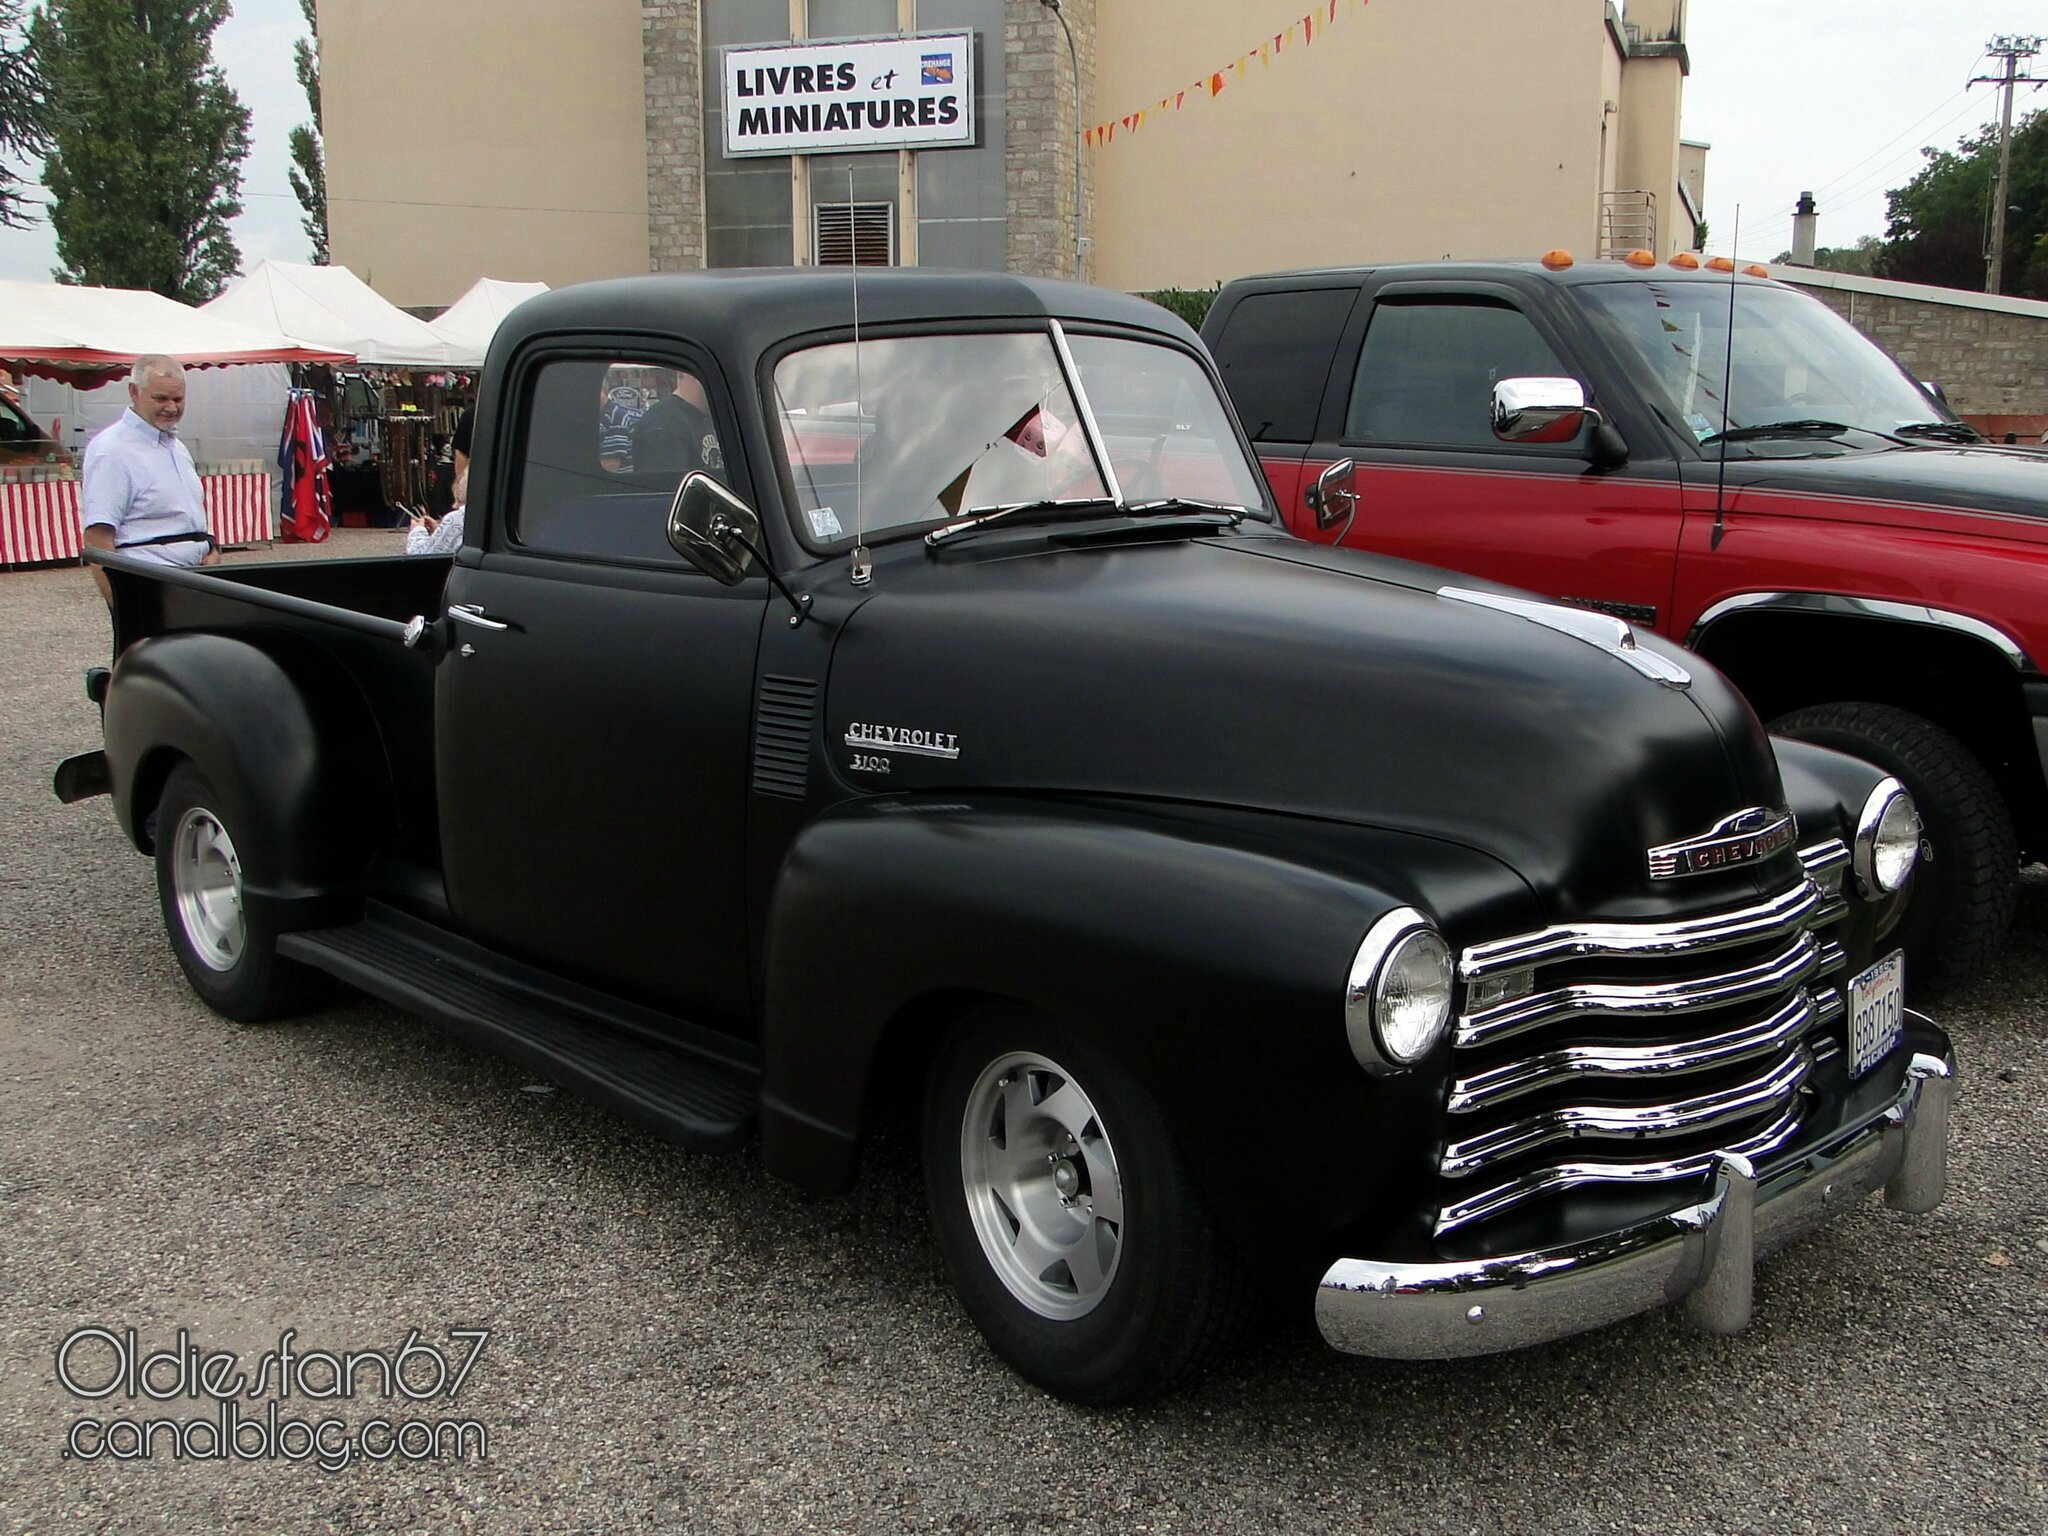 chevrolet 3100 pickup 1950 oldiesfan67 mon blog auto. Black Bedroom Furniture Sets. Home Design Ideas